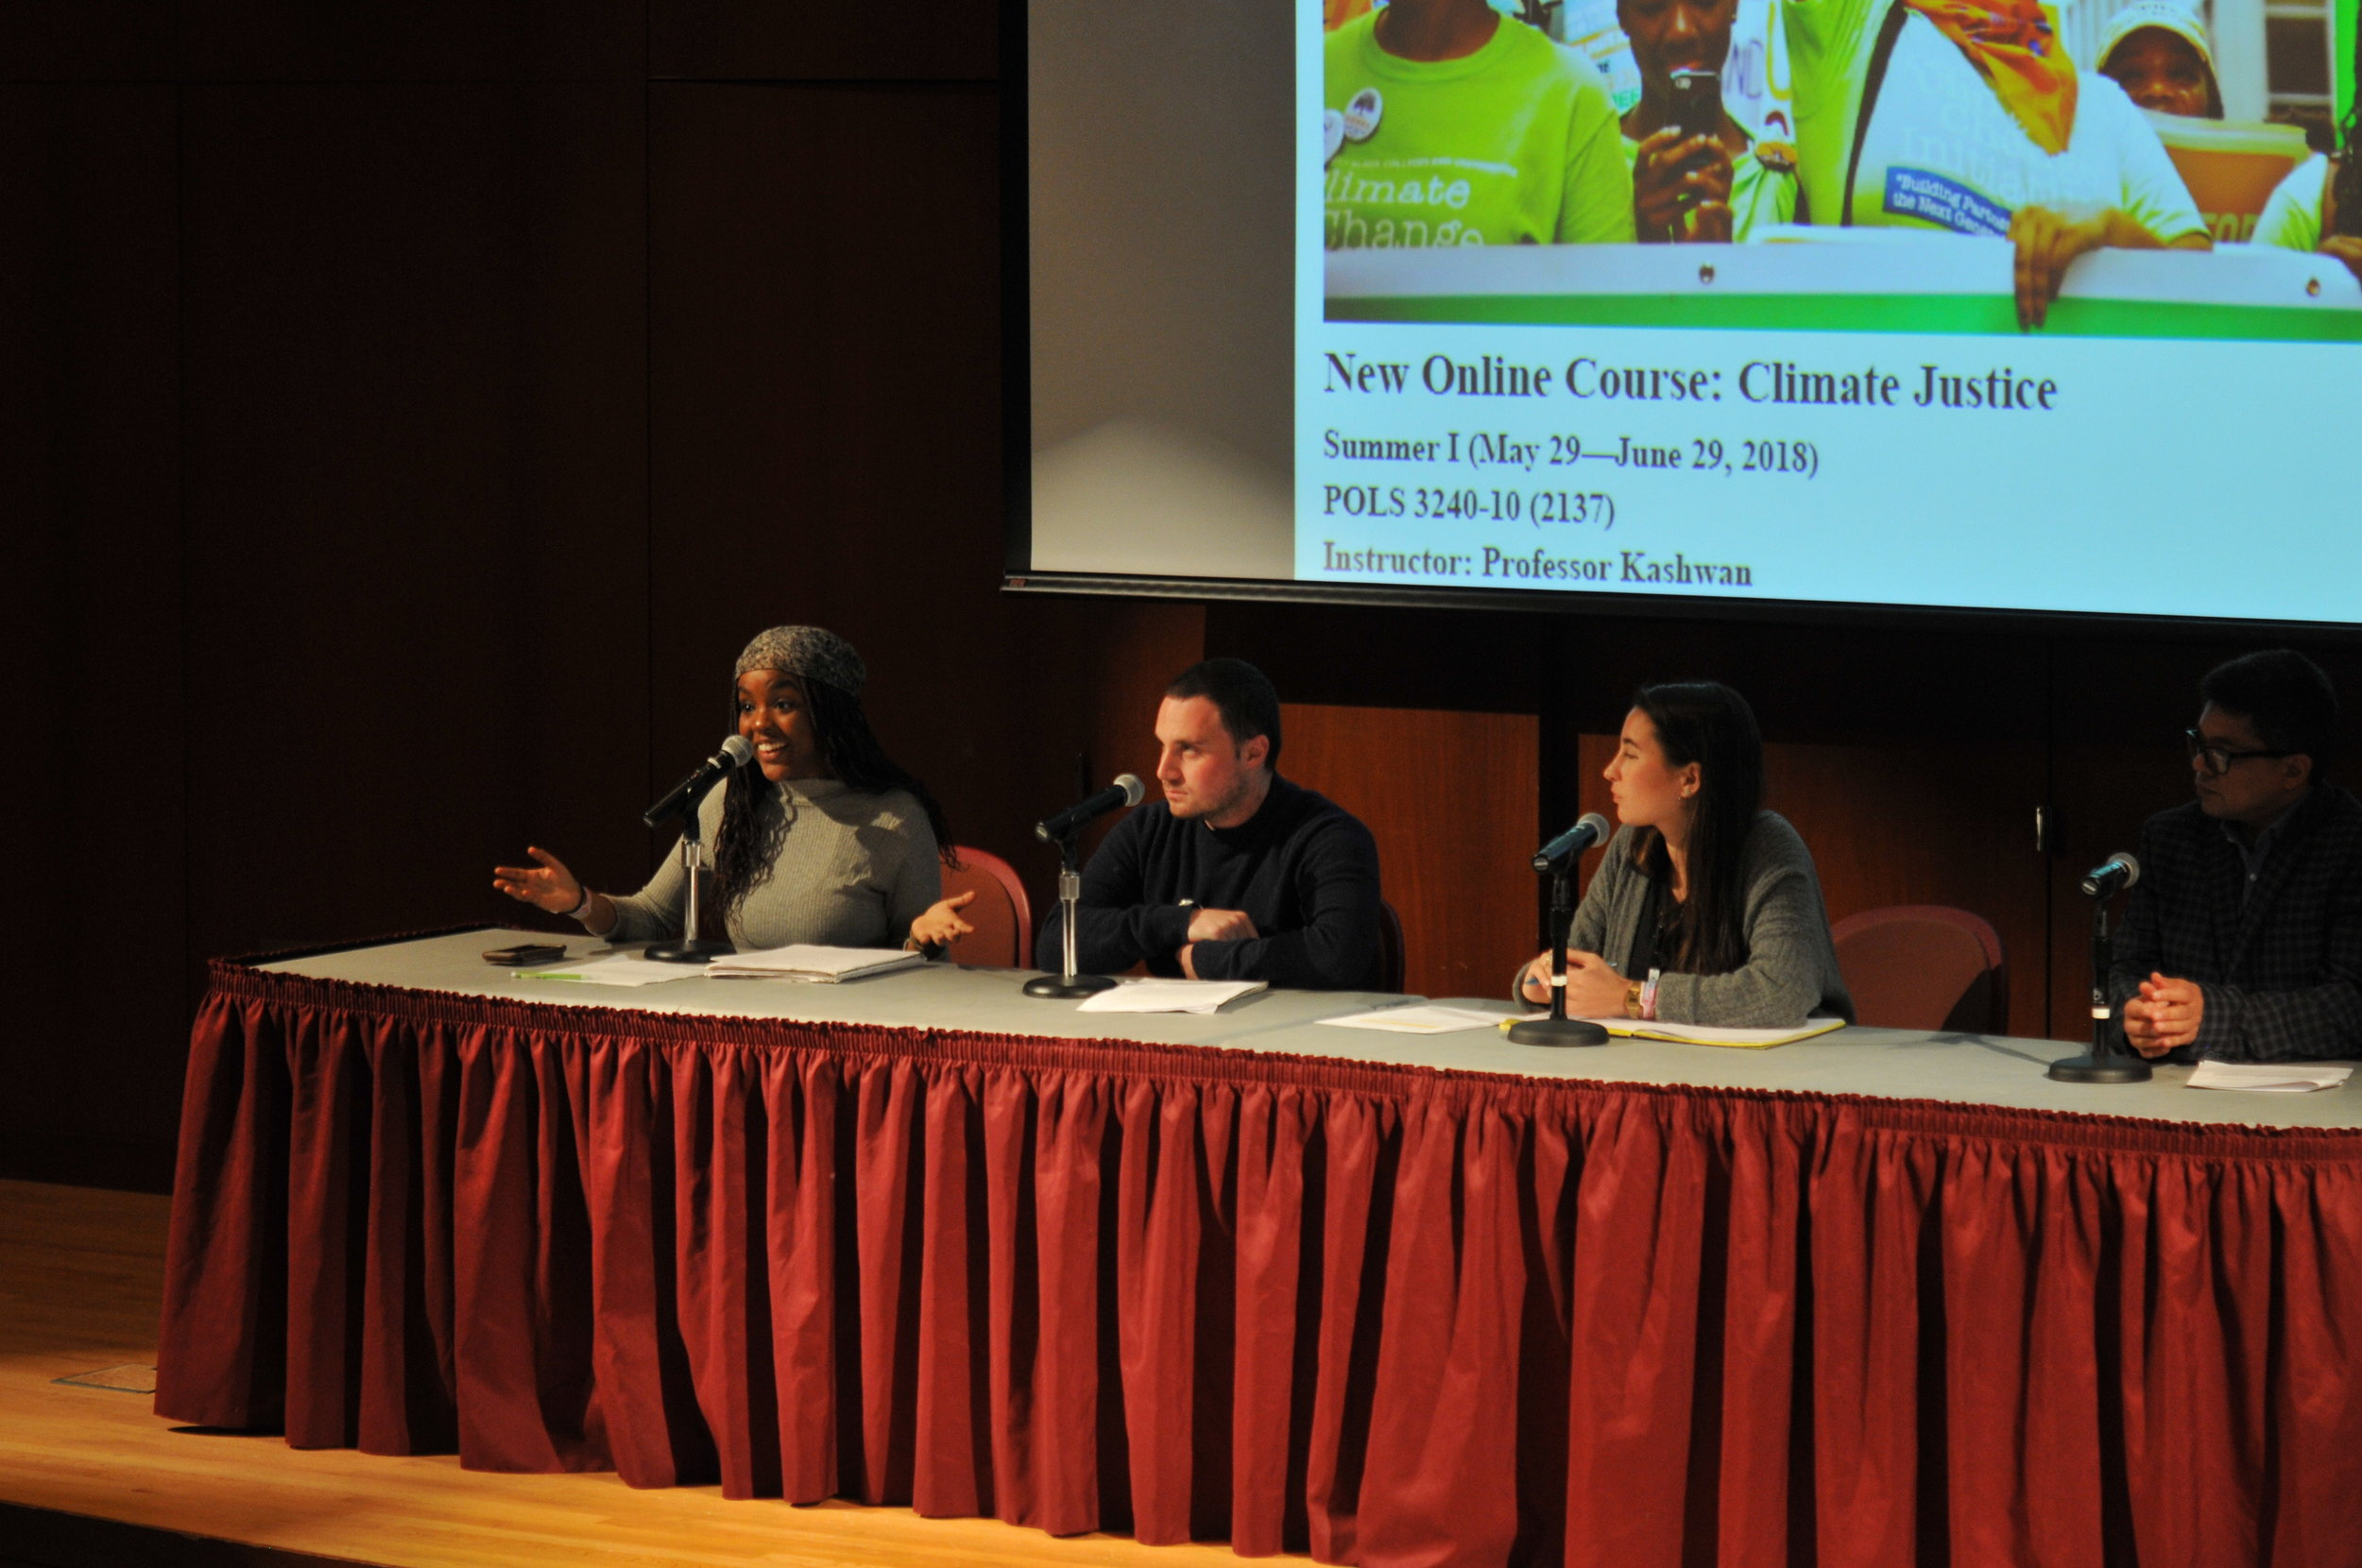 """UConn's """"Metanoia on The Environment"""" events continue at the Dodd Center with a presentation by Dr. Prakash Kashwan of the political science department on April 20th, 2018. The presentation included interviews with climate justice activists from all over the globe, including Monamie Bhadra, S.P Udayakumar, Roberto Thomas, and a panel of three UConn students: Wawa Gather, Rebecca Kaufman, and Evan Fritz. (Judah Shingleton/The Daily Campus)"""